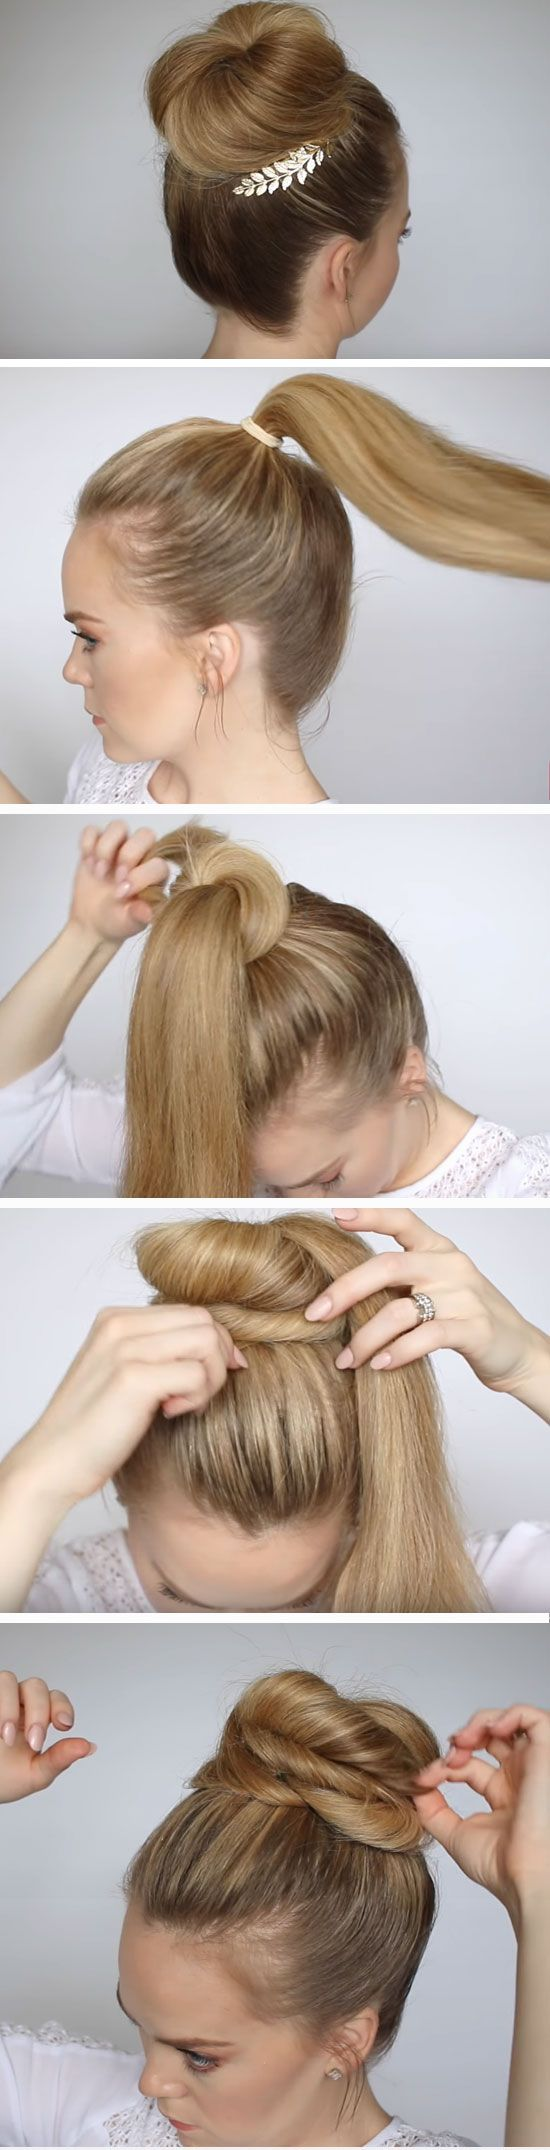 17 best hairstyles images on pinterest | hairstyle for long hair